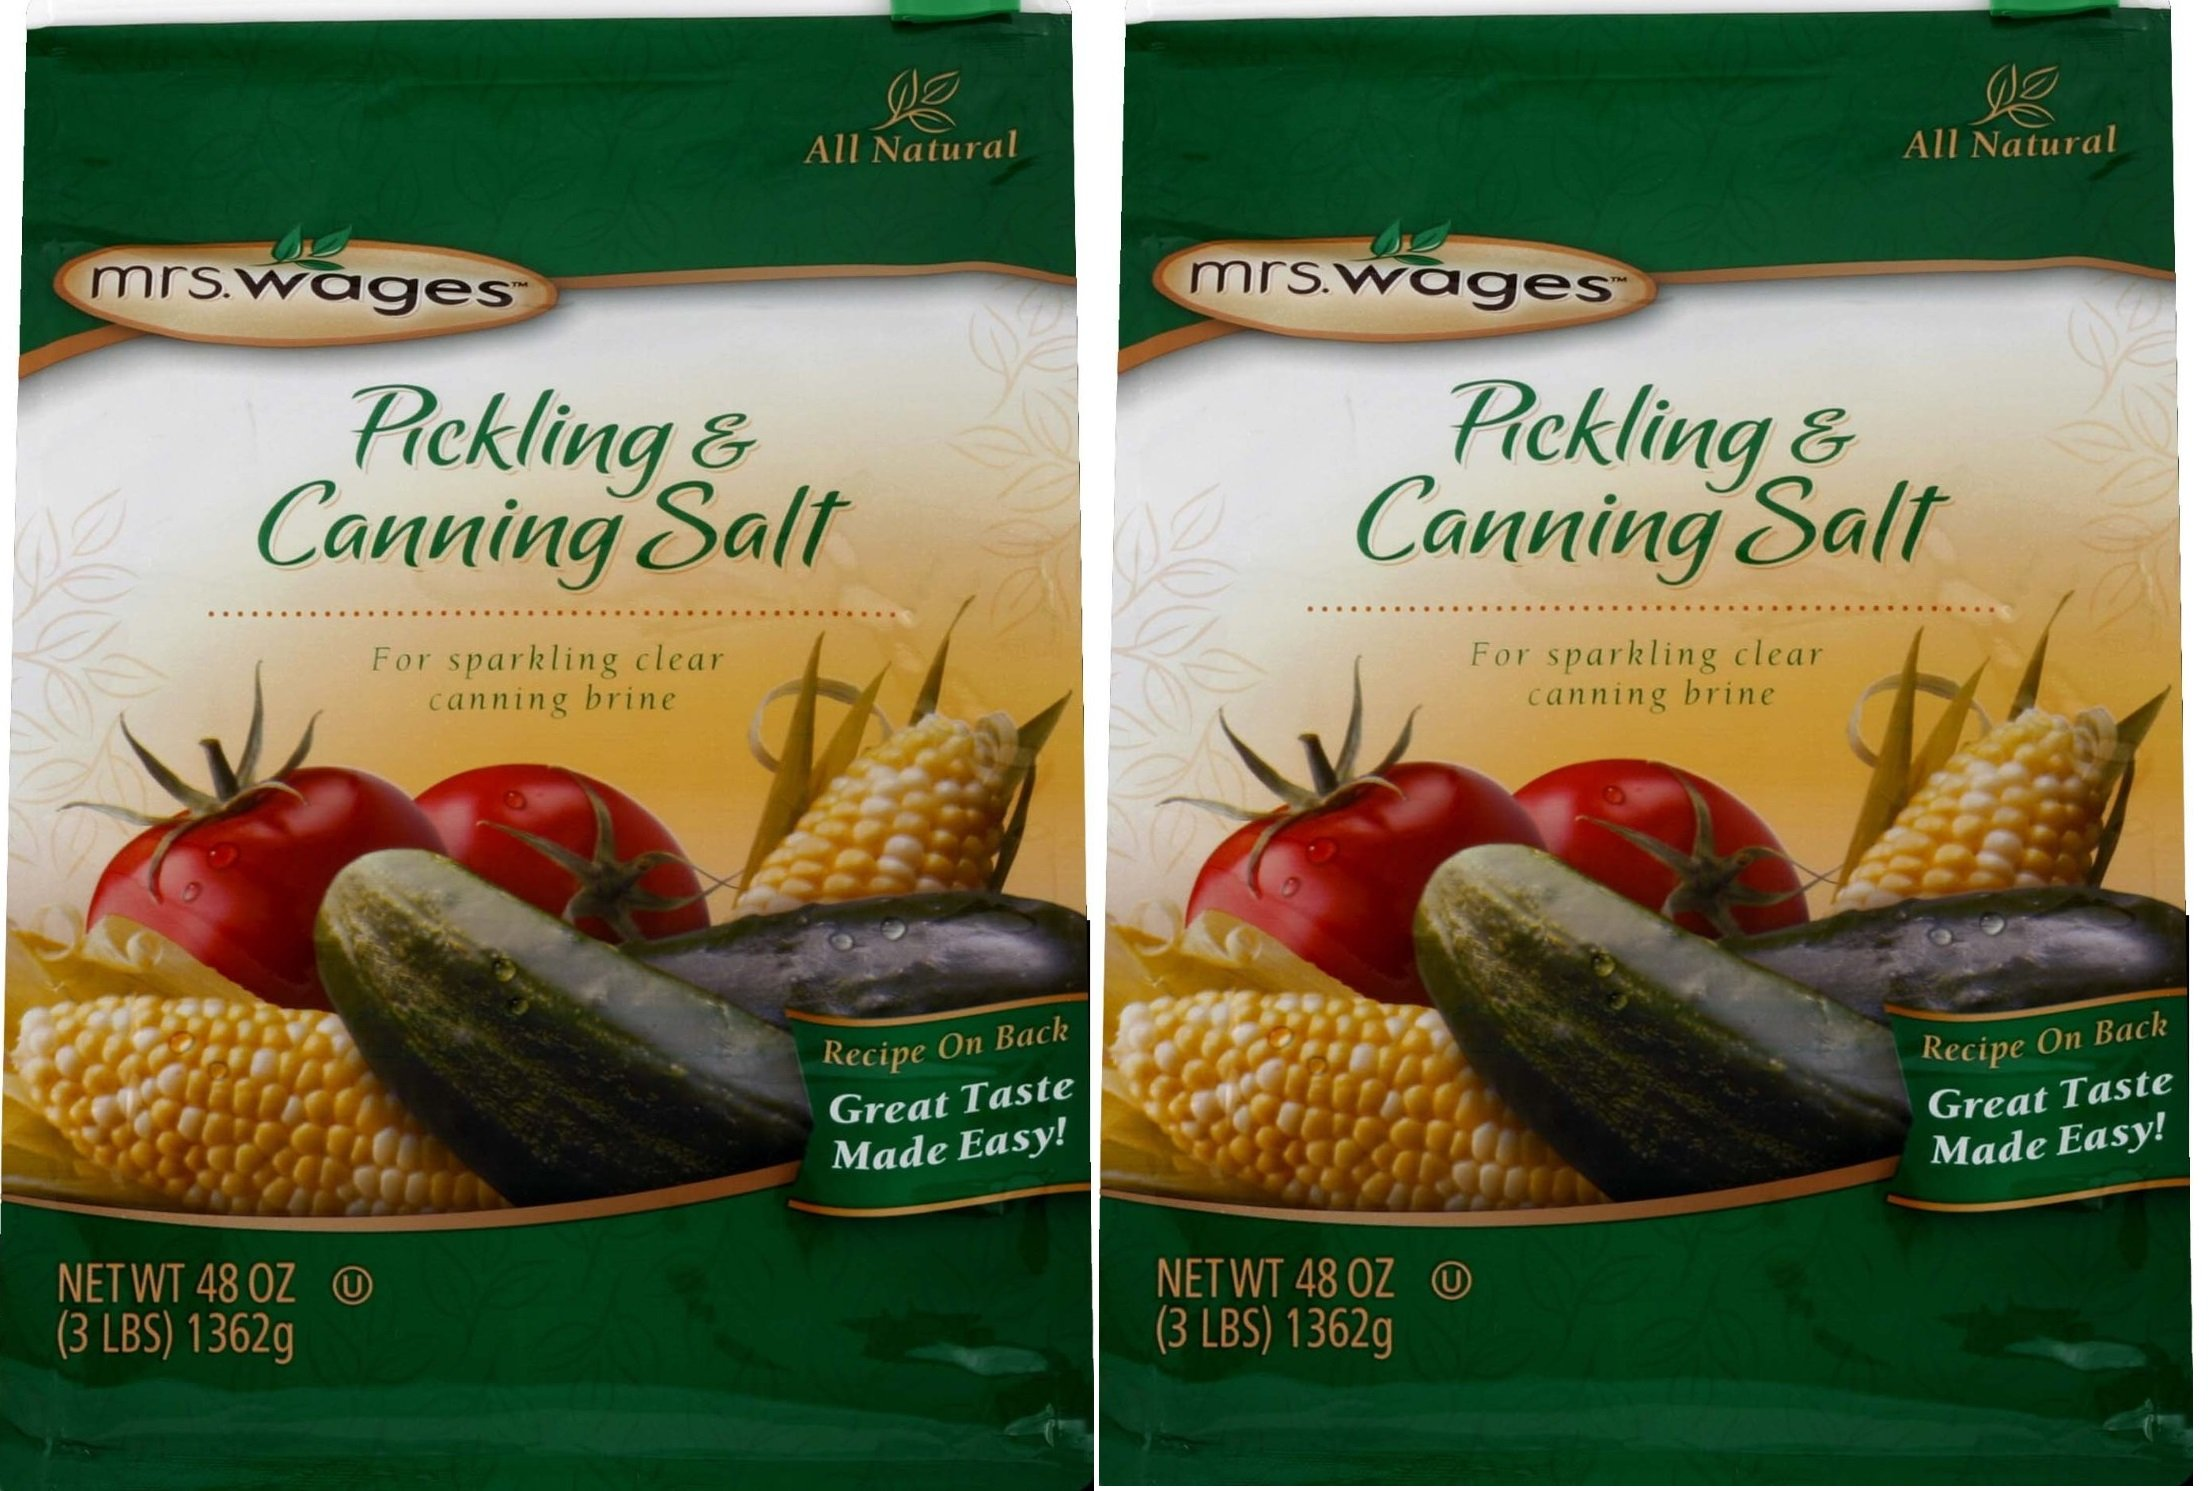 Mrs. Wages Canning & Pickling Mix Salt